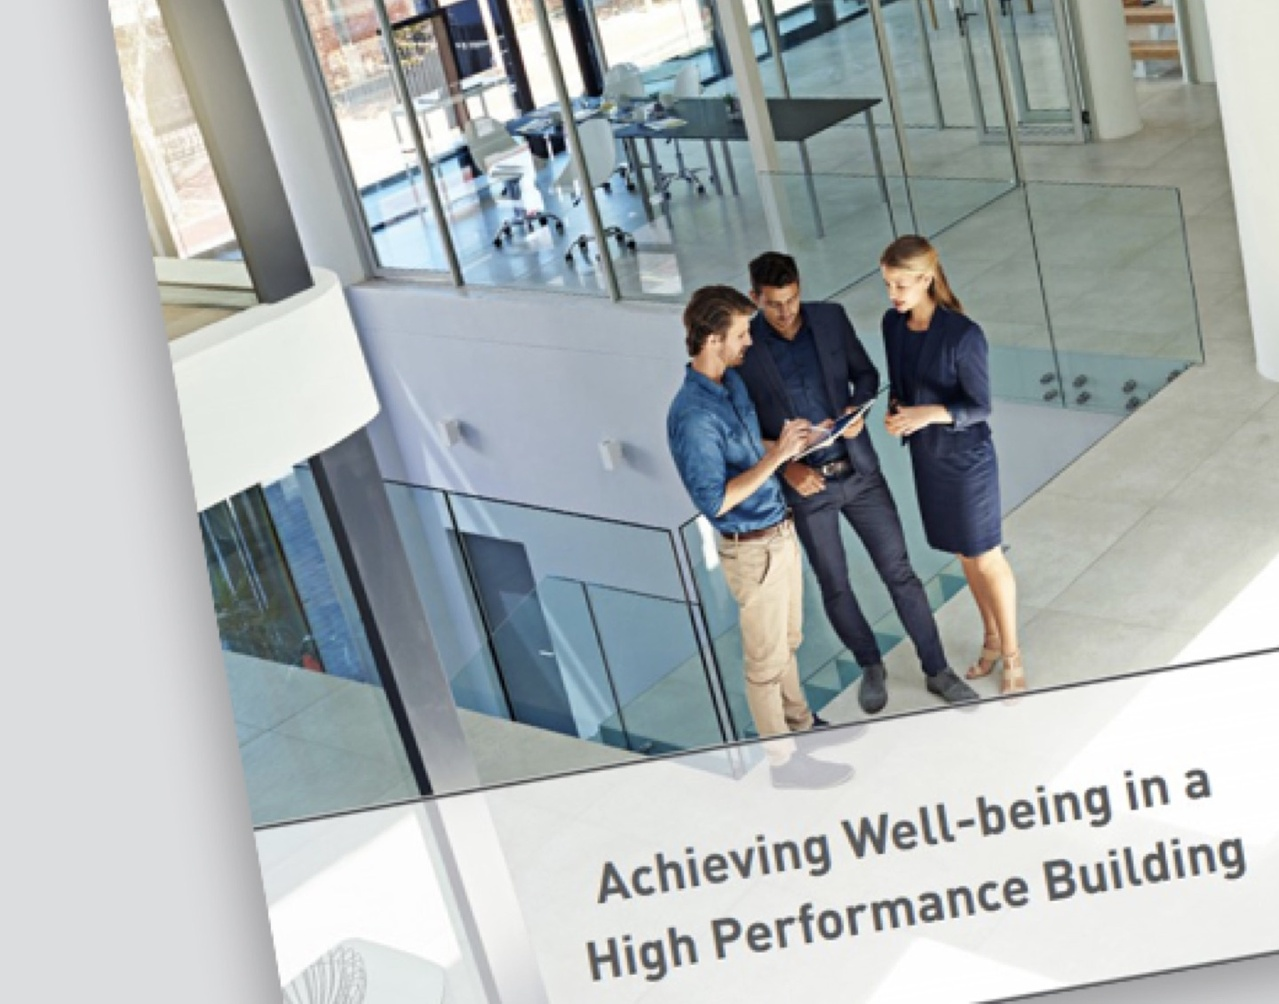 Achieving Well-being in high performance building